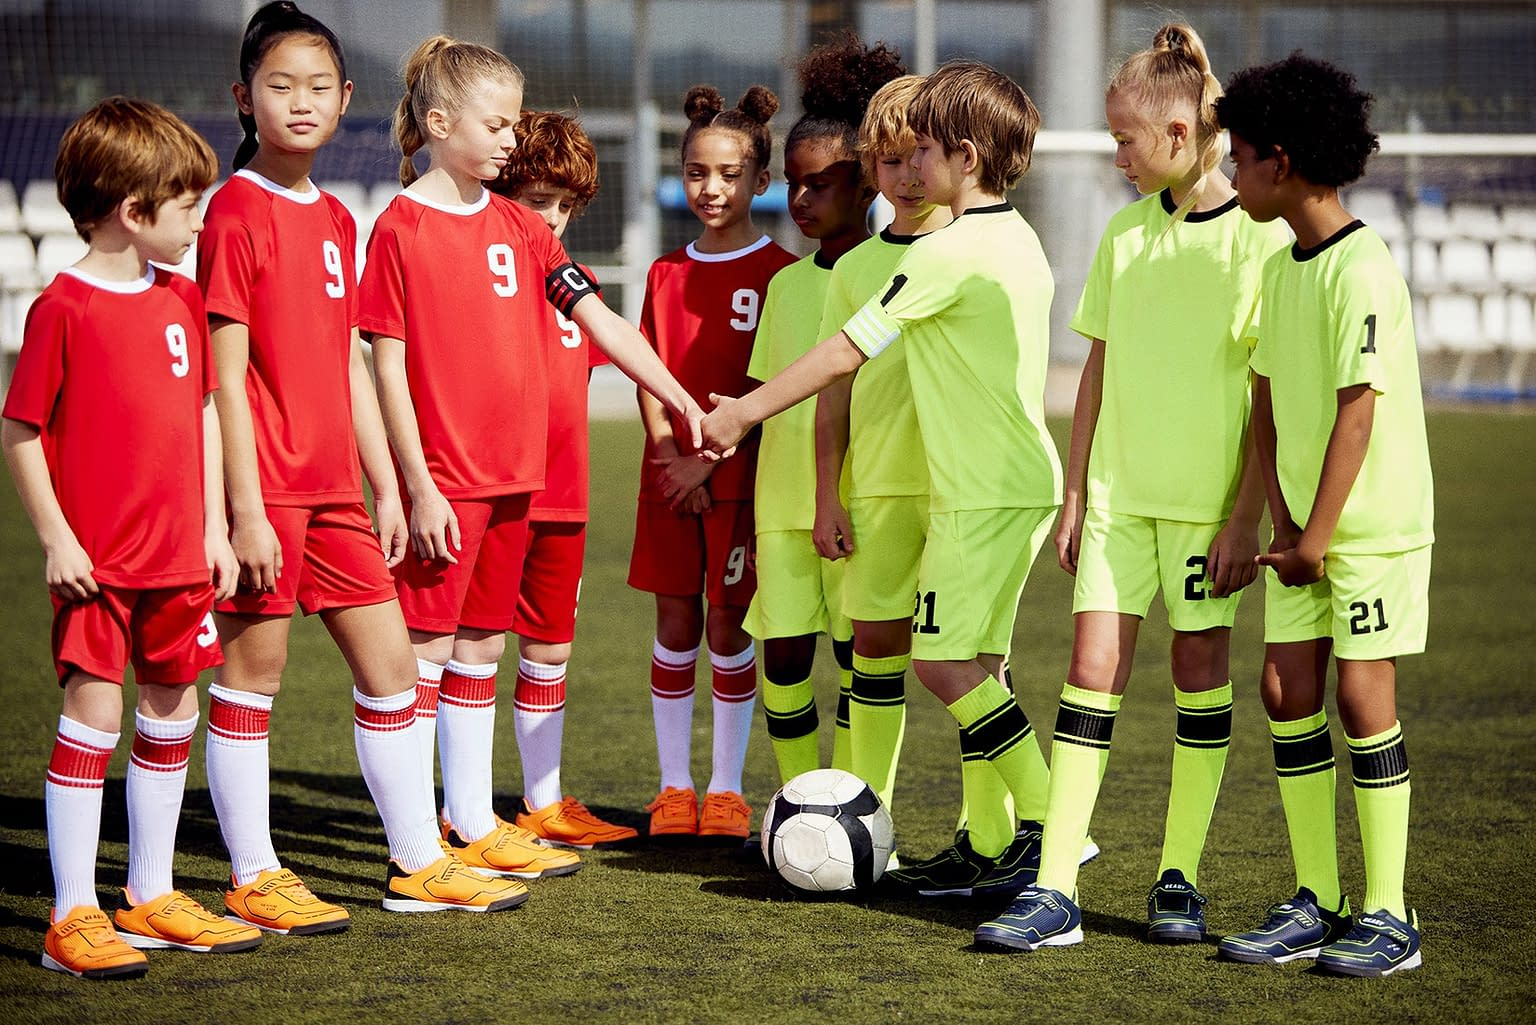 FOOTBALL-KIDS-COLLECTION-PHOTO-12-BY-ENRIC-GALCERAN